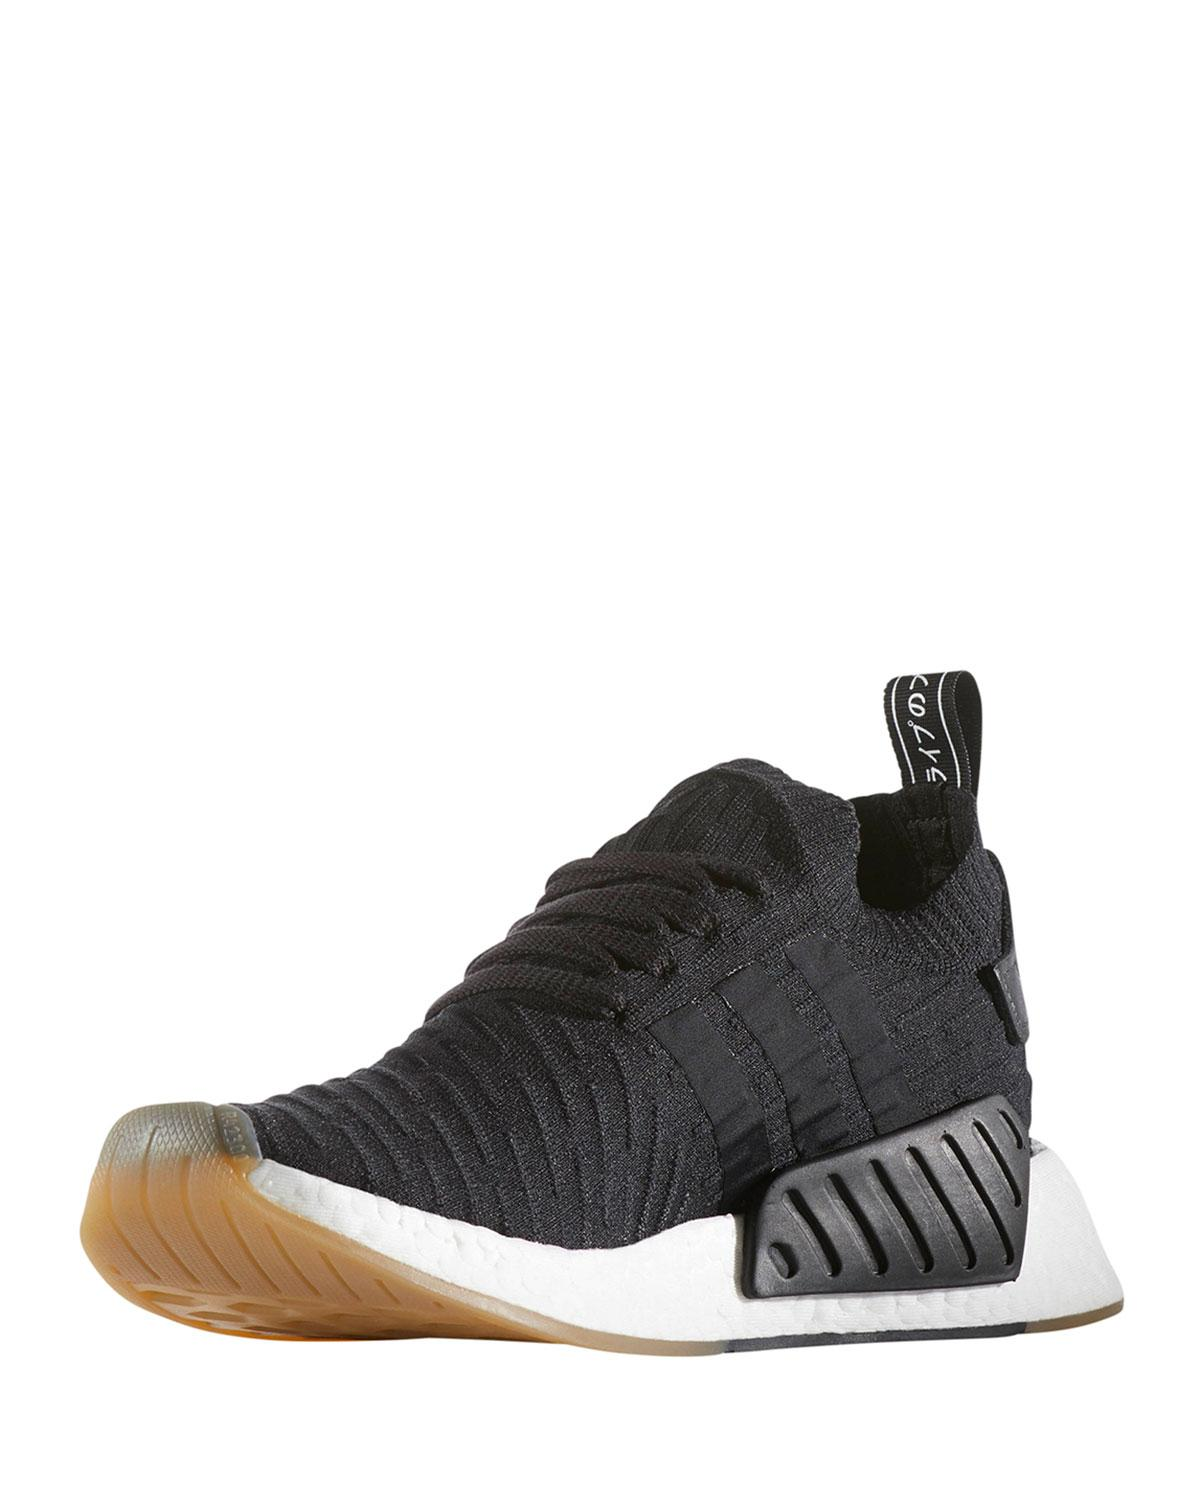 Mens NMD_r2 Low-Top Sneakers adidas E4zIady6d